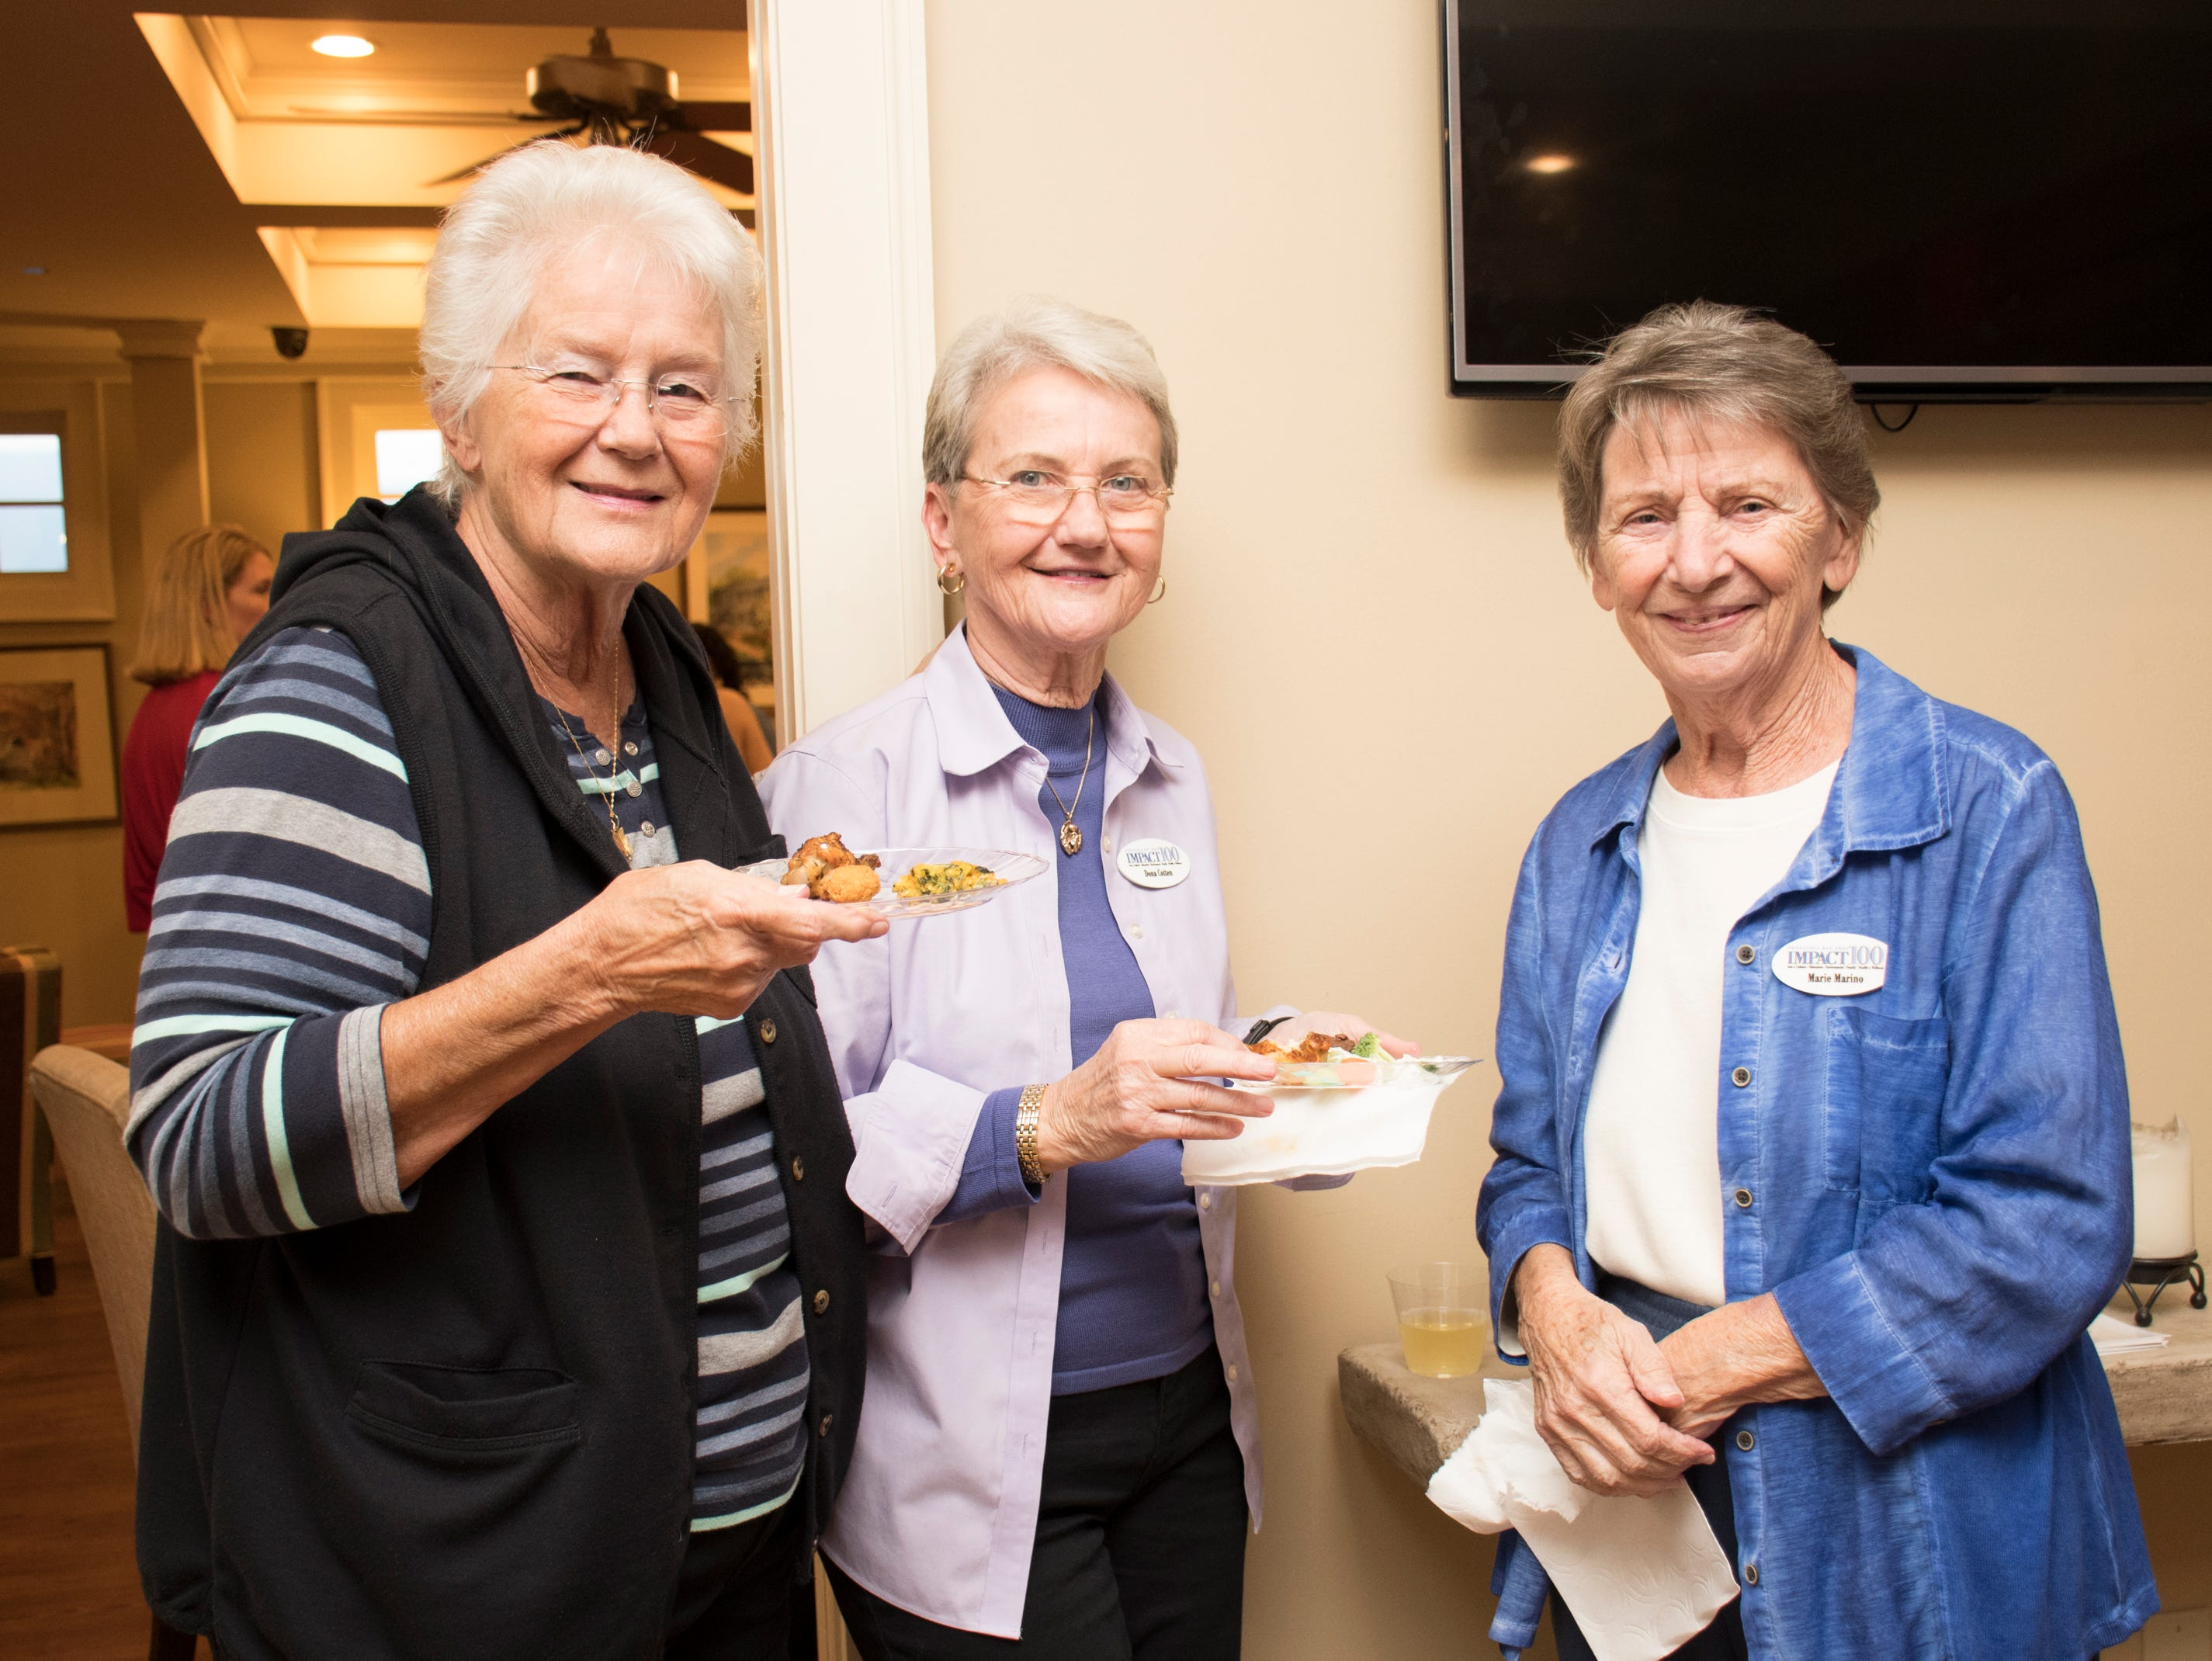 Jackie Wills, from left, Dona Cotten, and Marie Marino during the Impact 100 Pensacola Bay Area meeting at the Lee House in Pensacola on Tuesday, January 8, 2019.